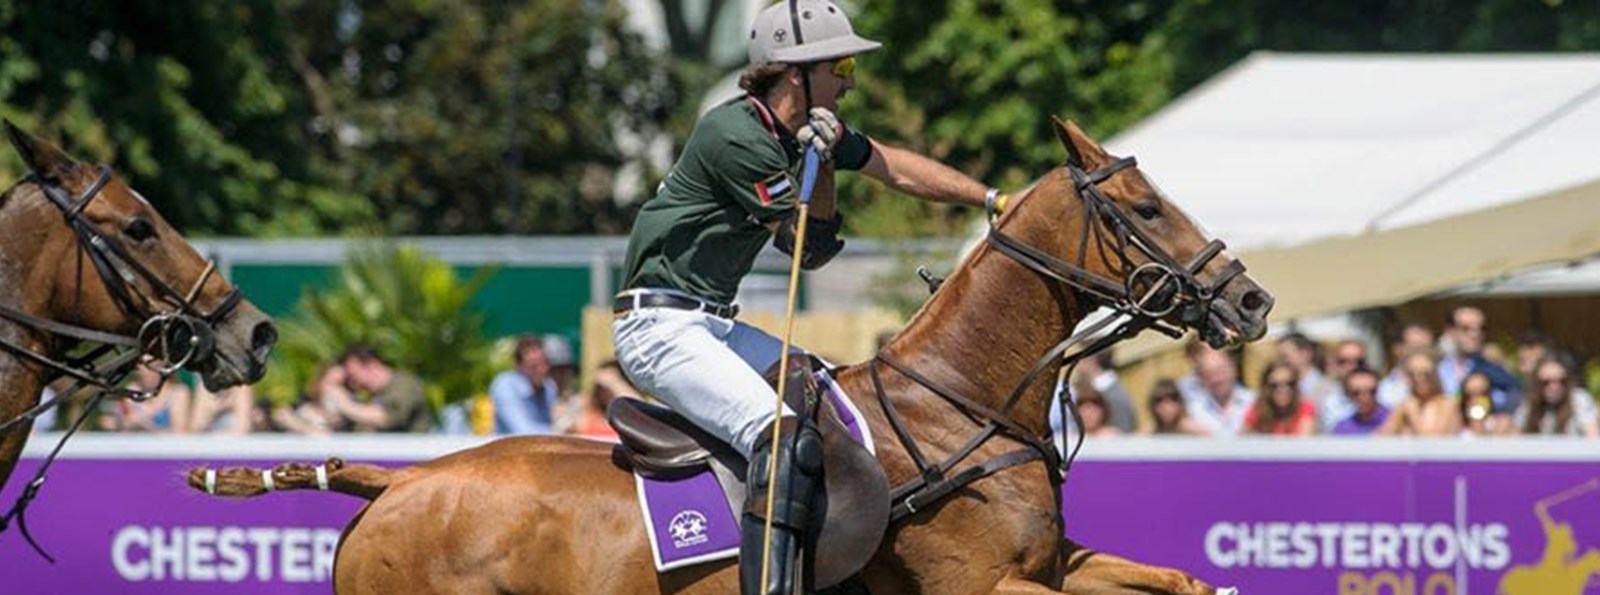 Chestertons Polo in the Park - 5 reasons you'll love it!